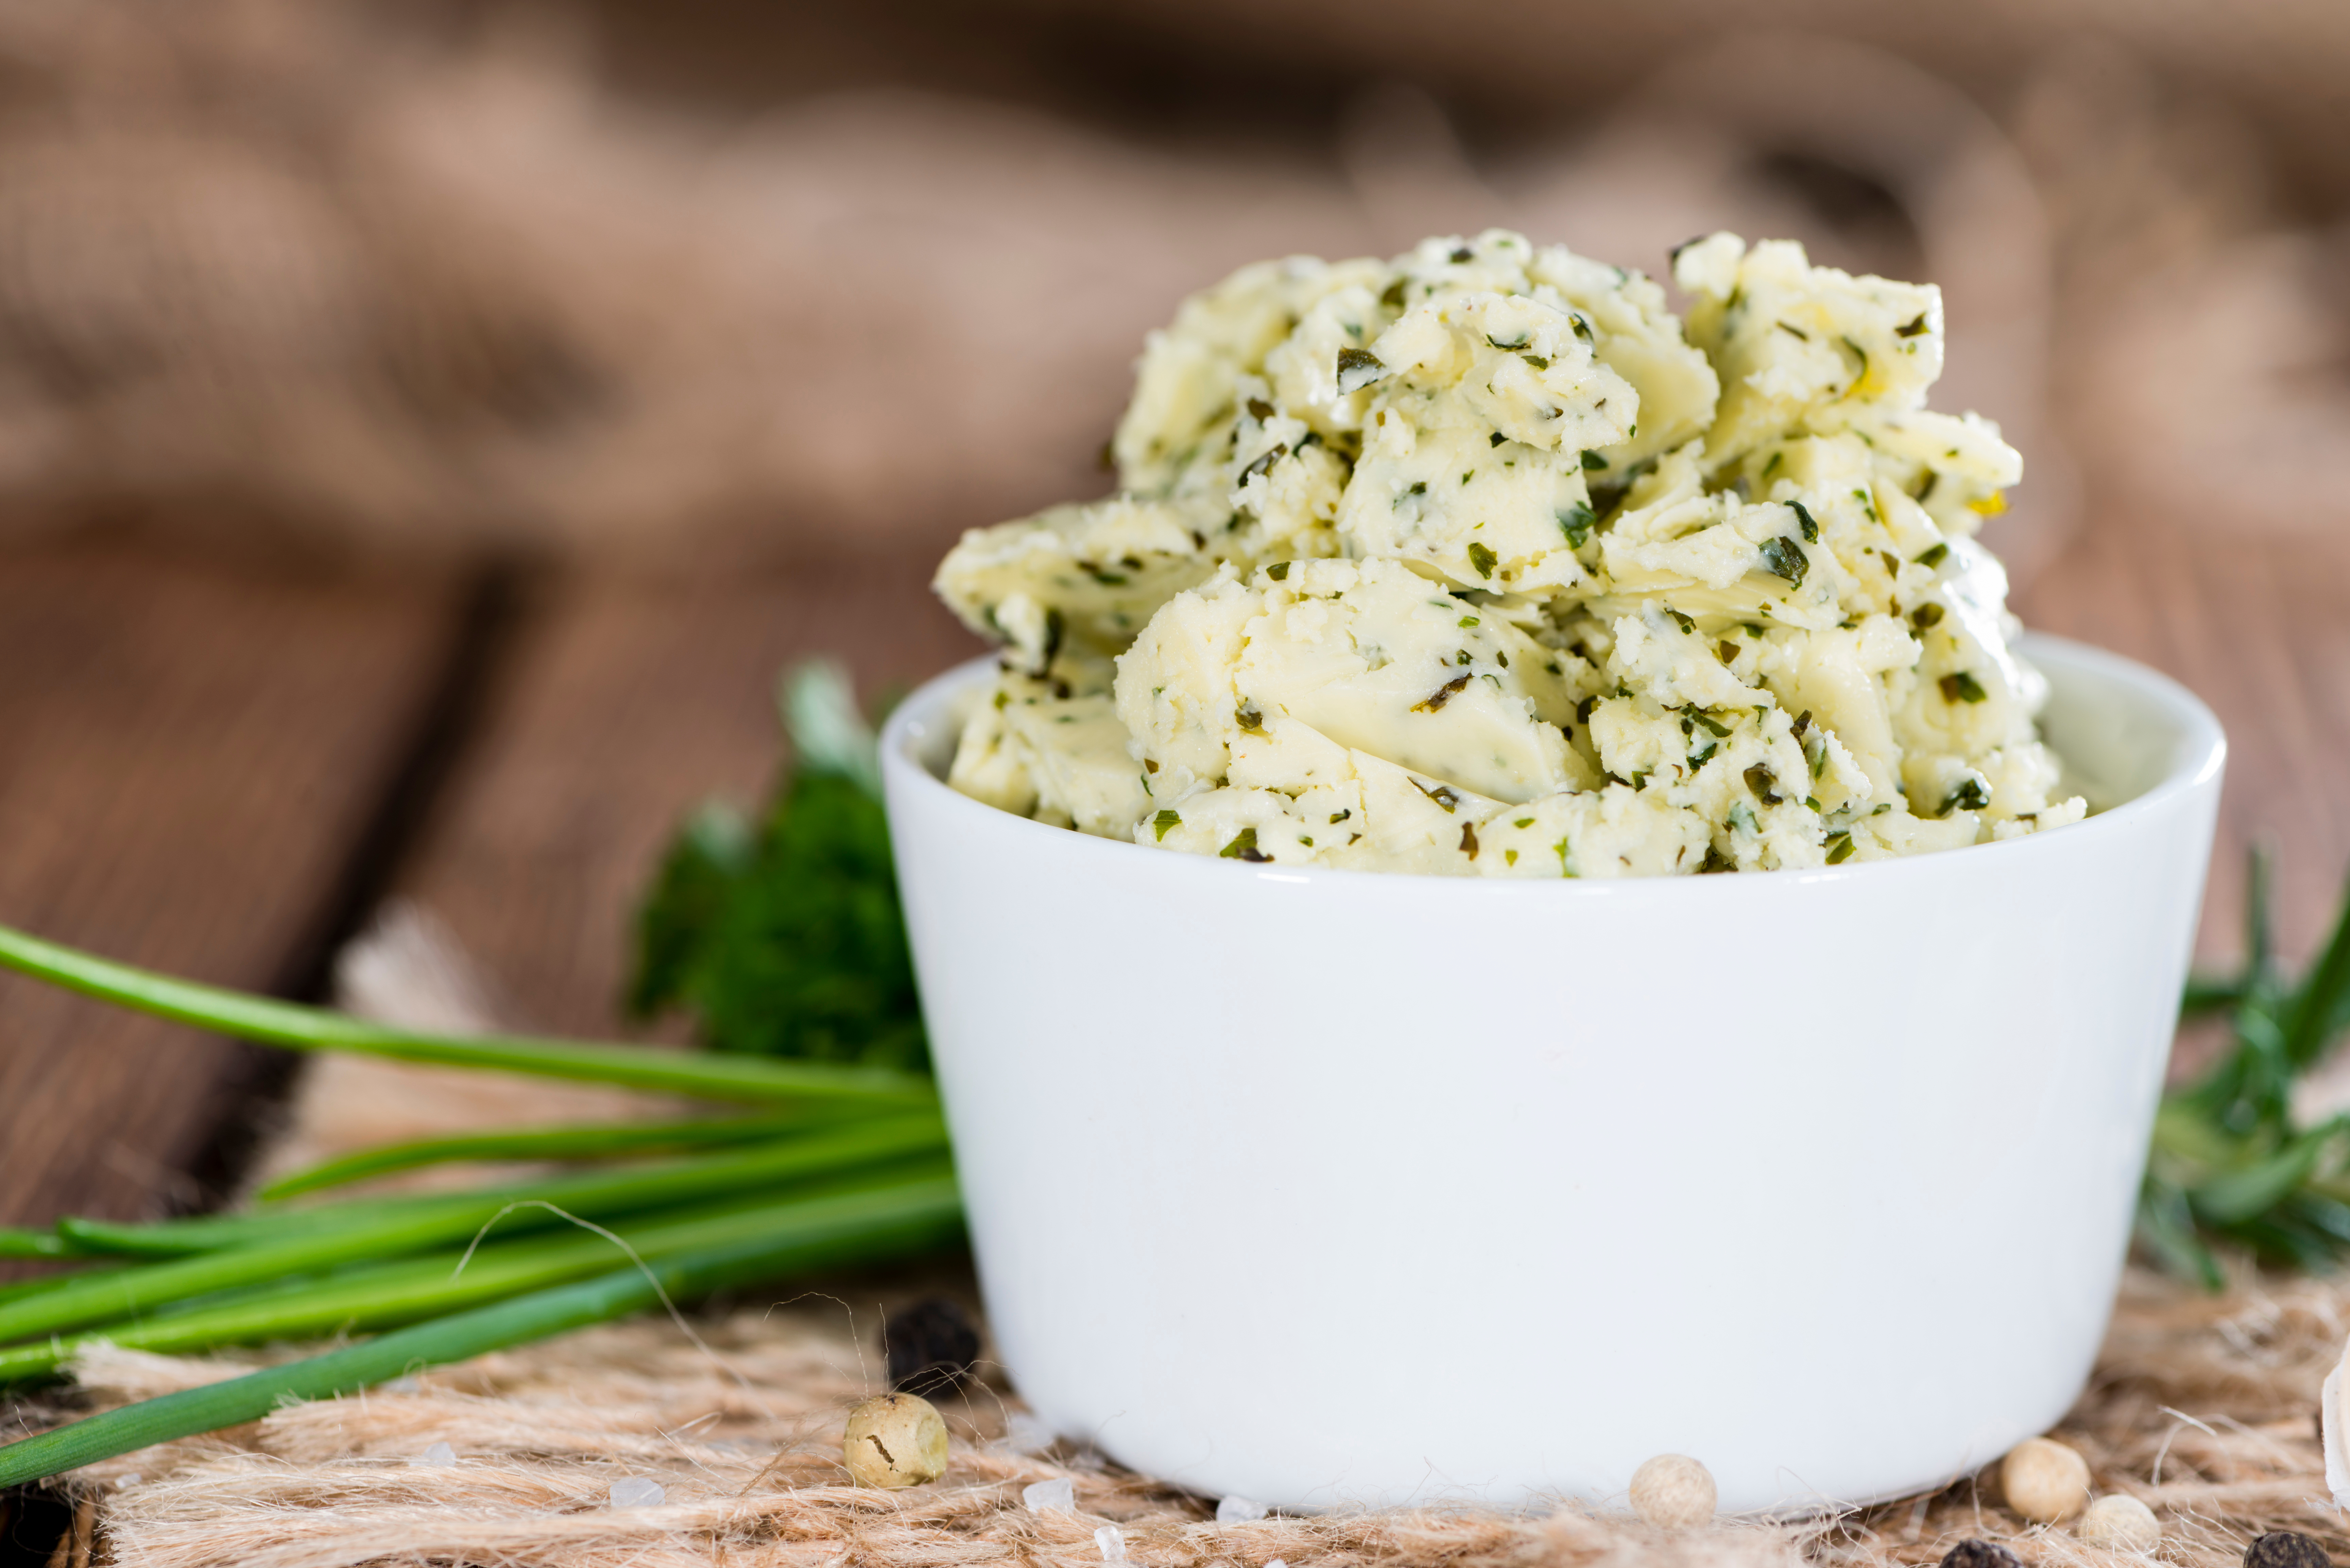 Roasted Garlic and Herb Compound Butter